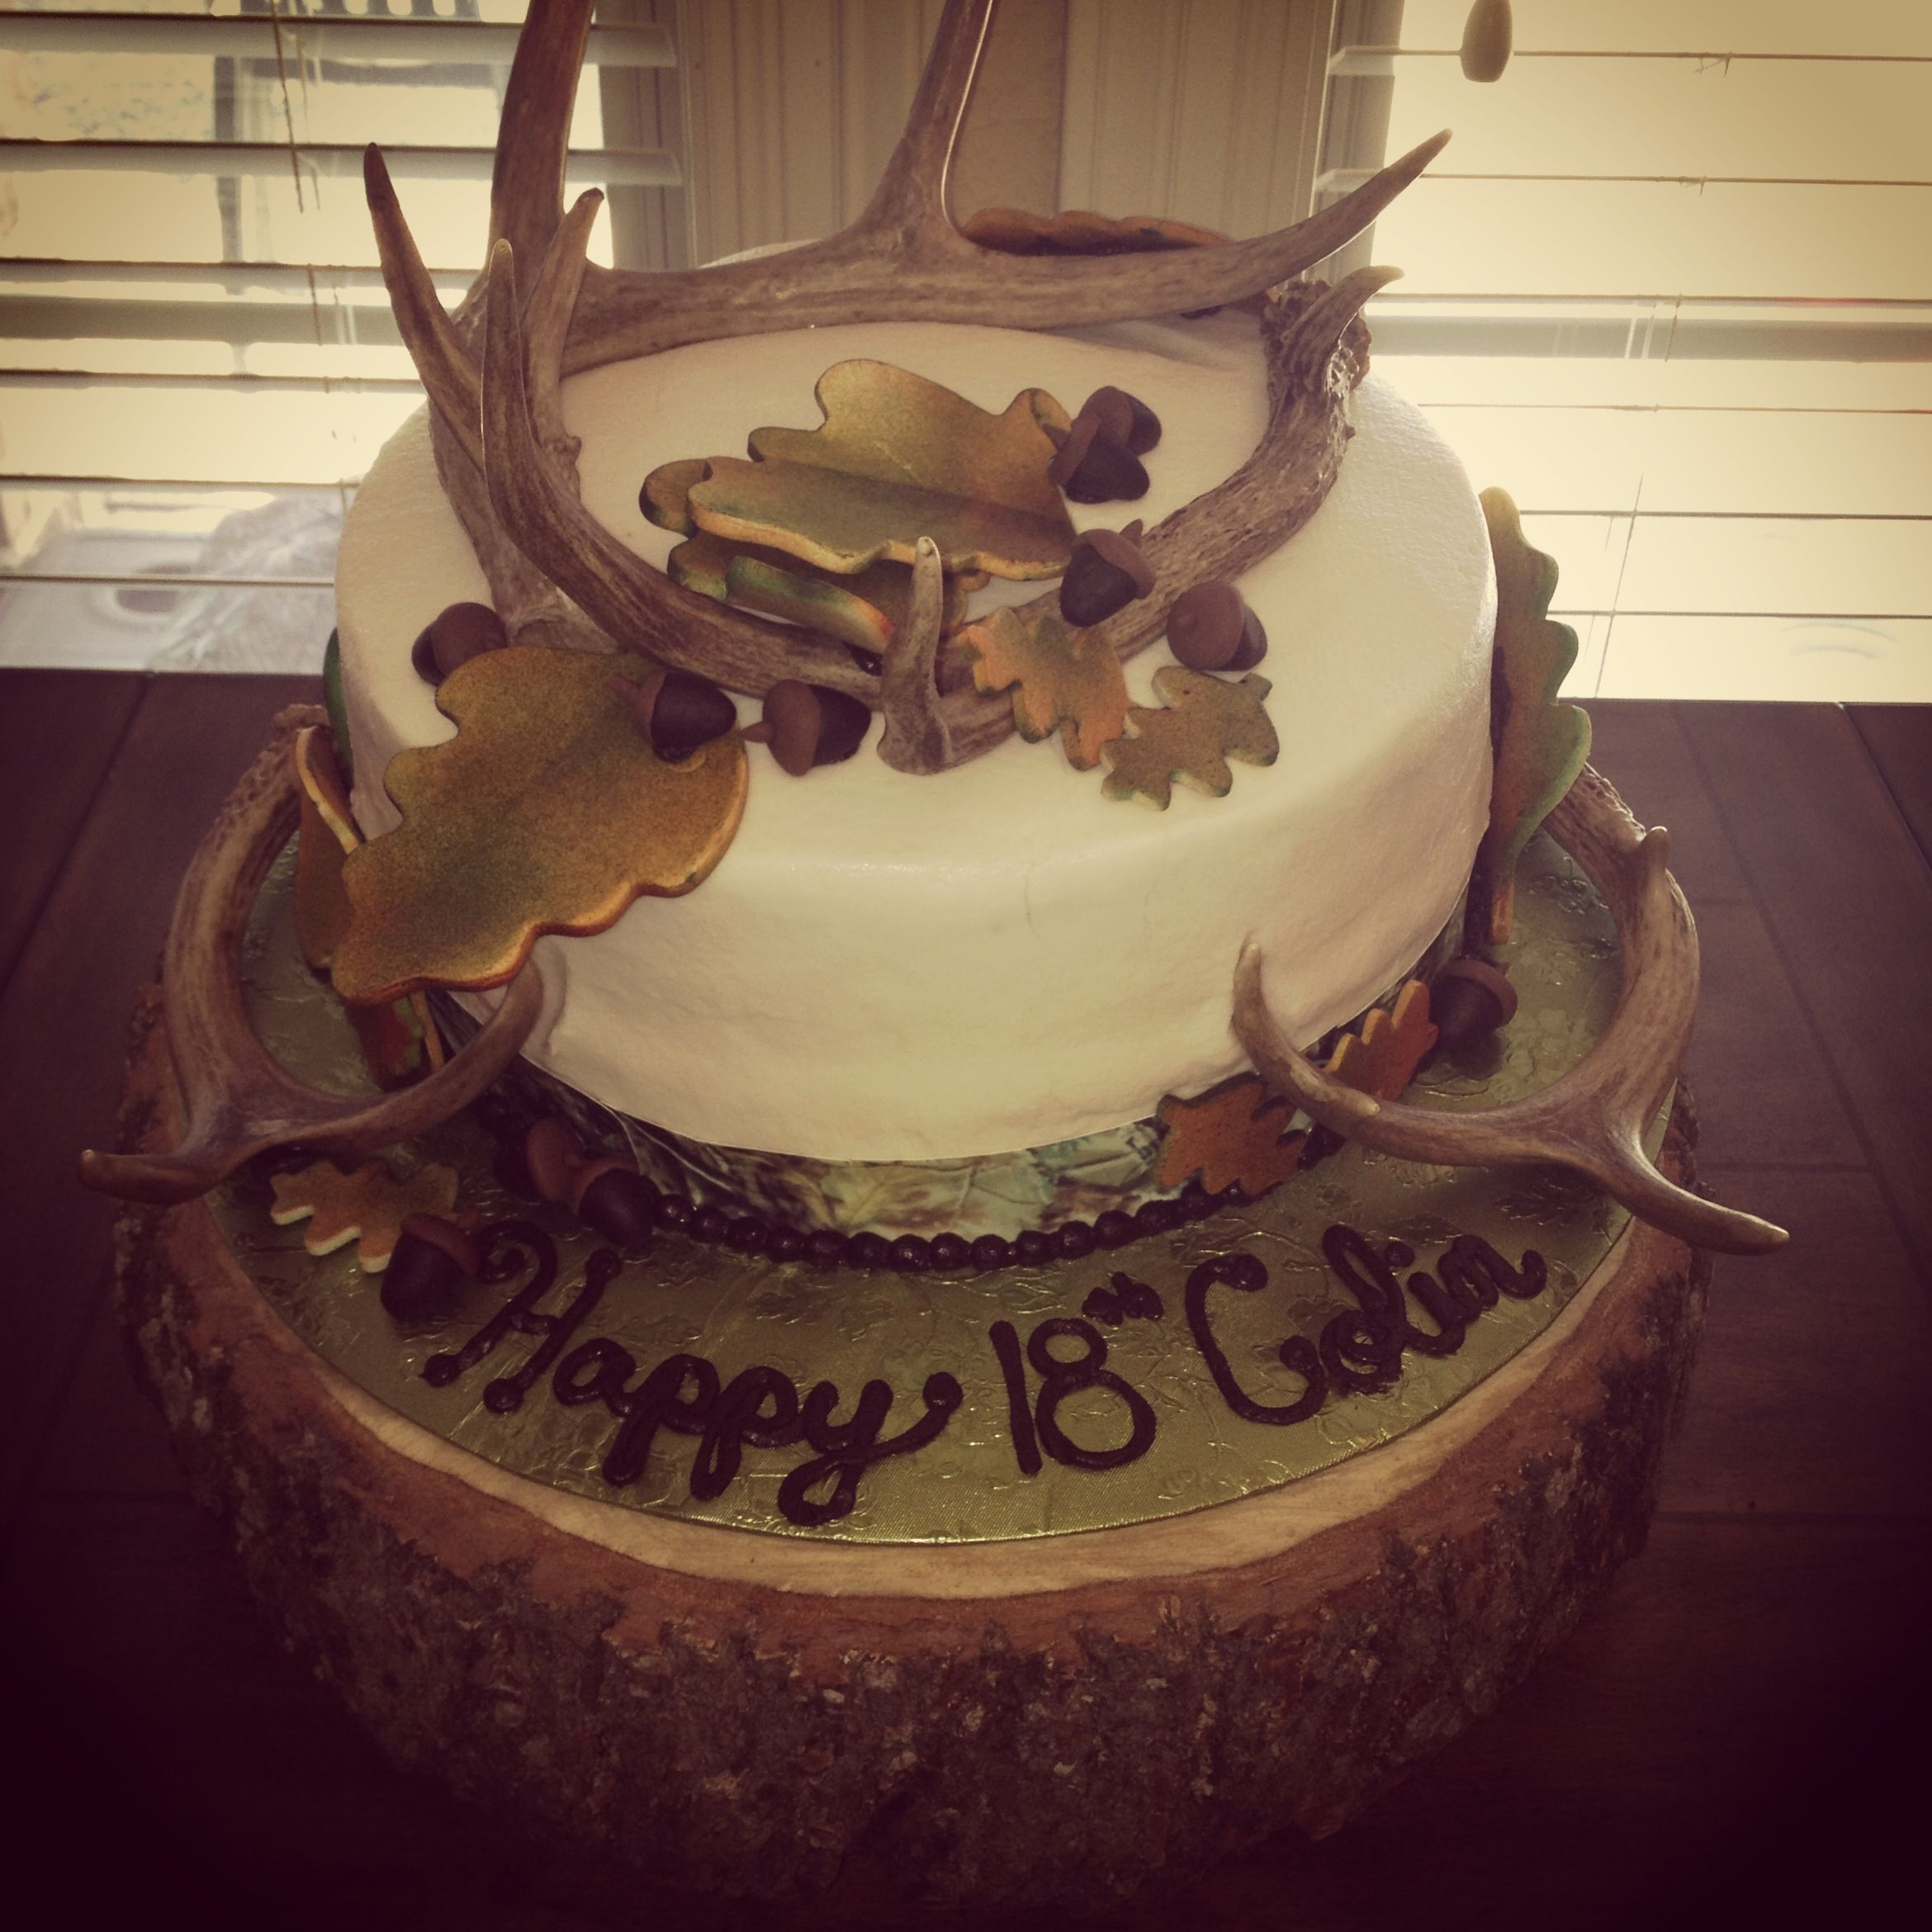 Hunting birthday party decorations party ideas deer hunting party - Camo Hunting Cake Cake Decorating Pinterest